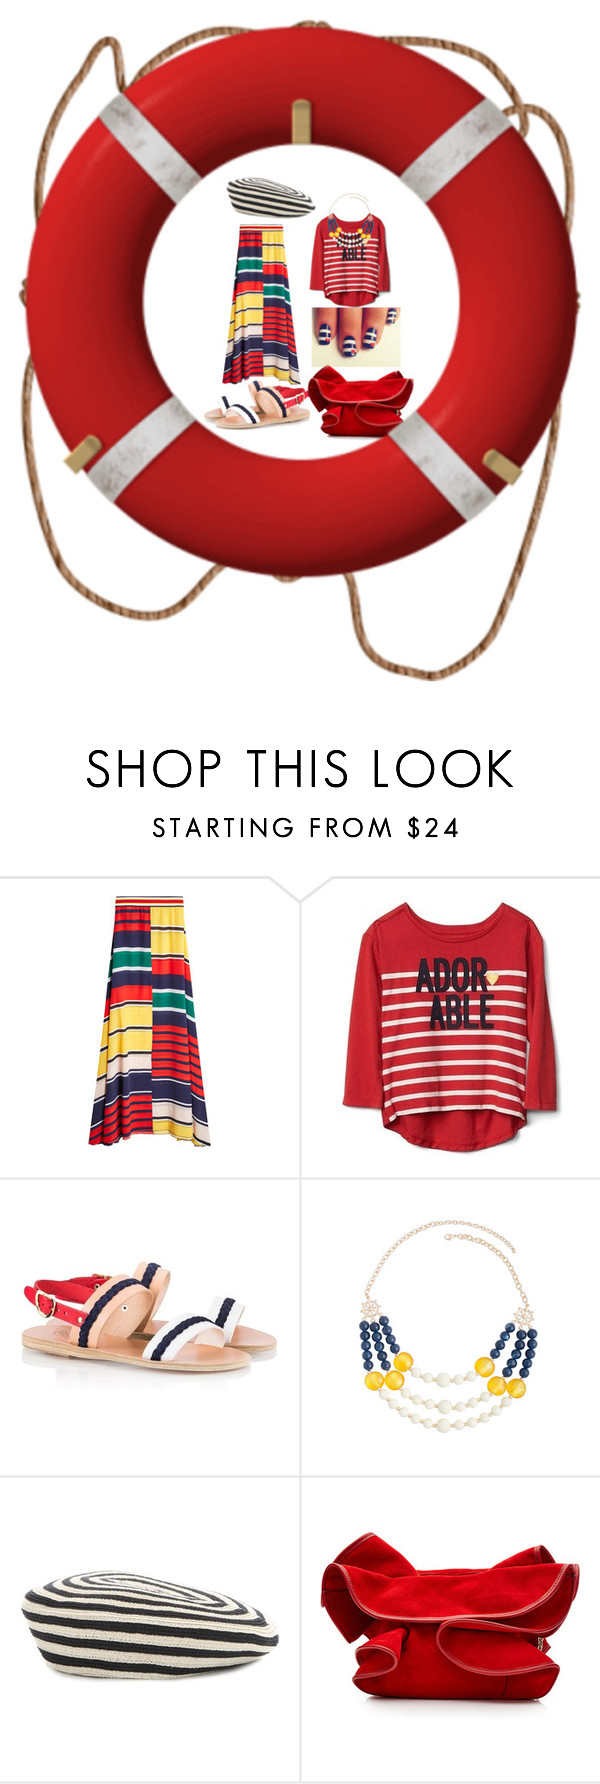 """Little marine"" by subvilli ❤ liked on Polyvore featuring Ancient Greek Sandals, Mixit, Gucci, Nina Ricci and stripes"